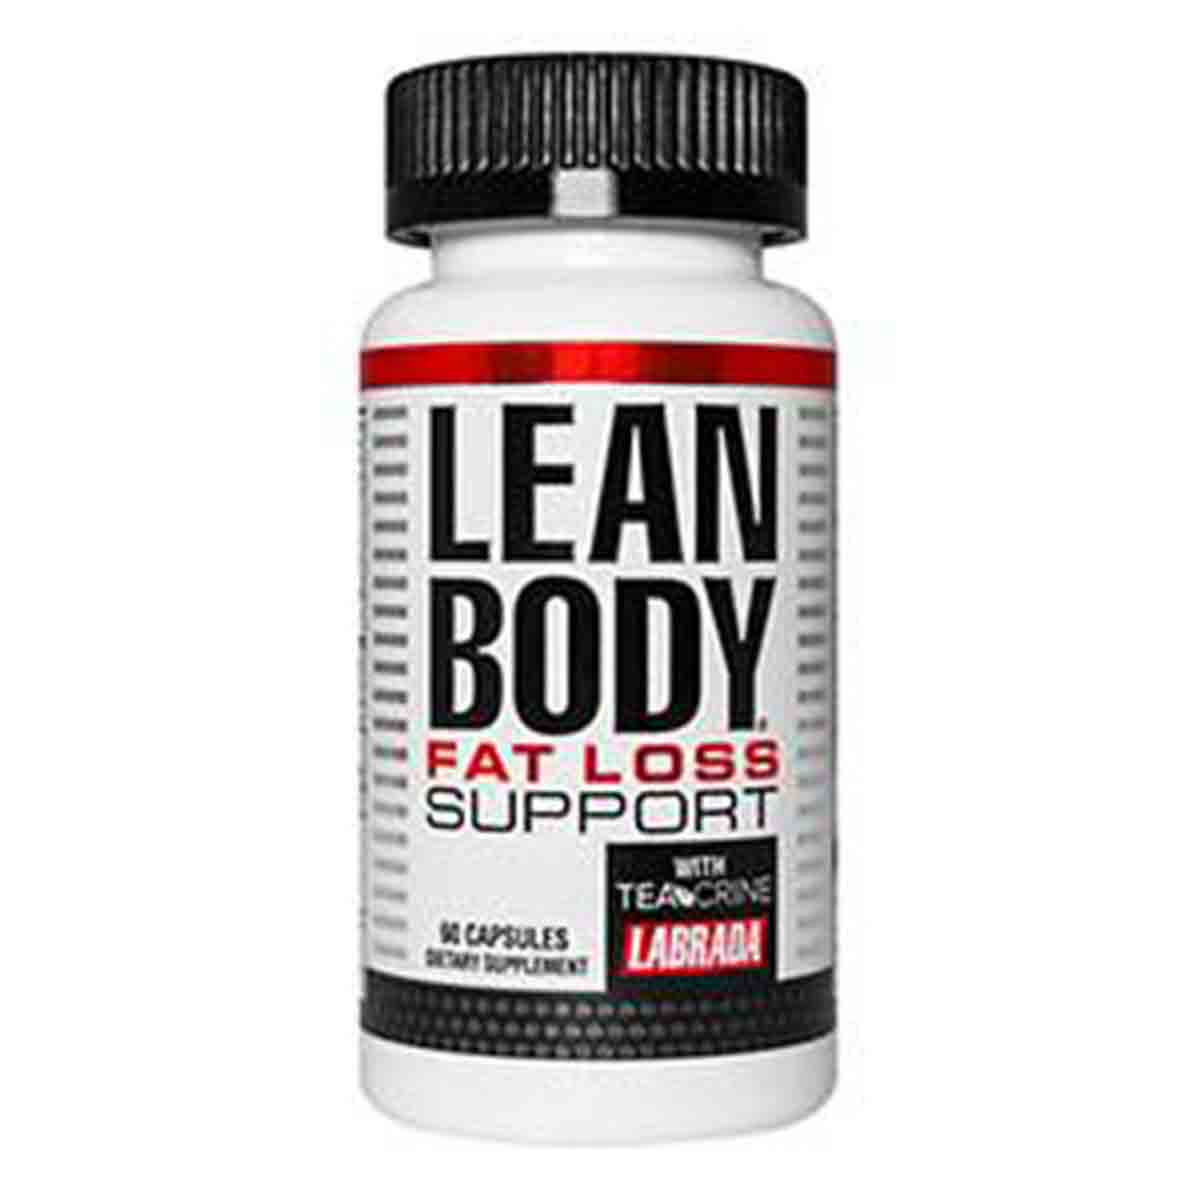 Labrada Lean Body Fat Loss Support